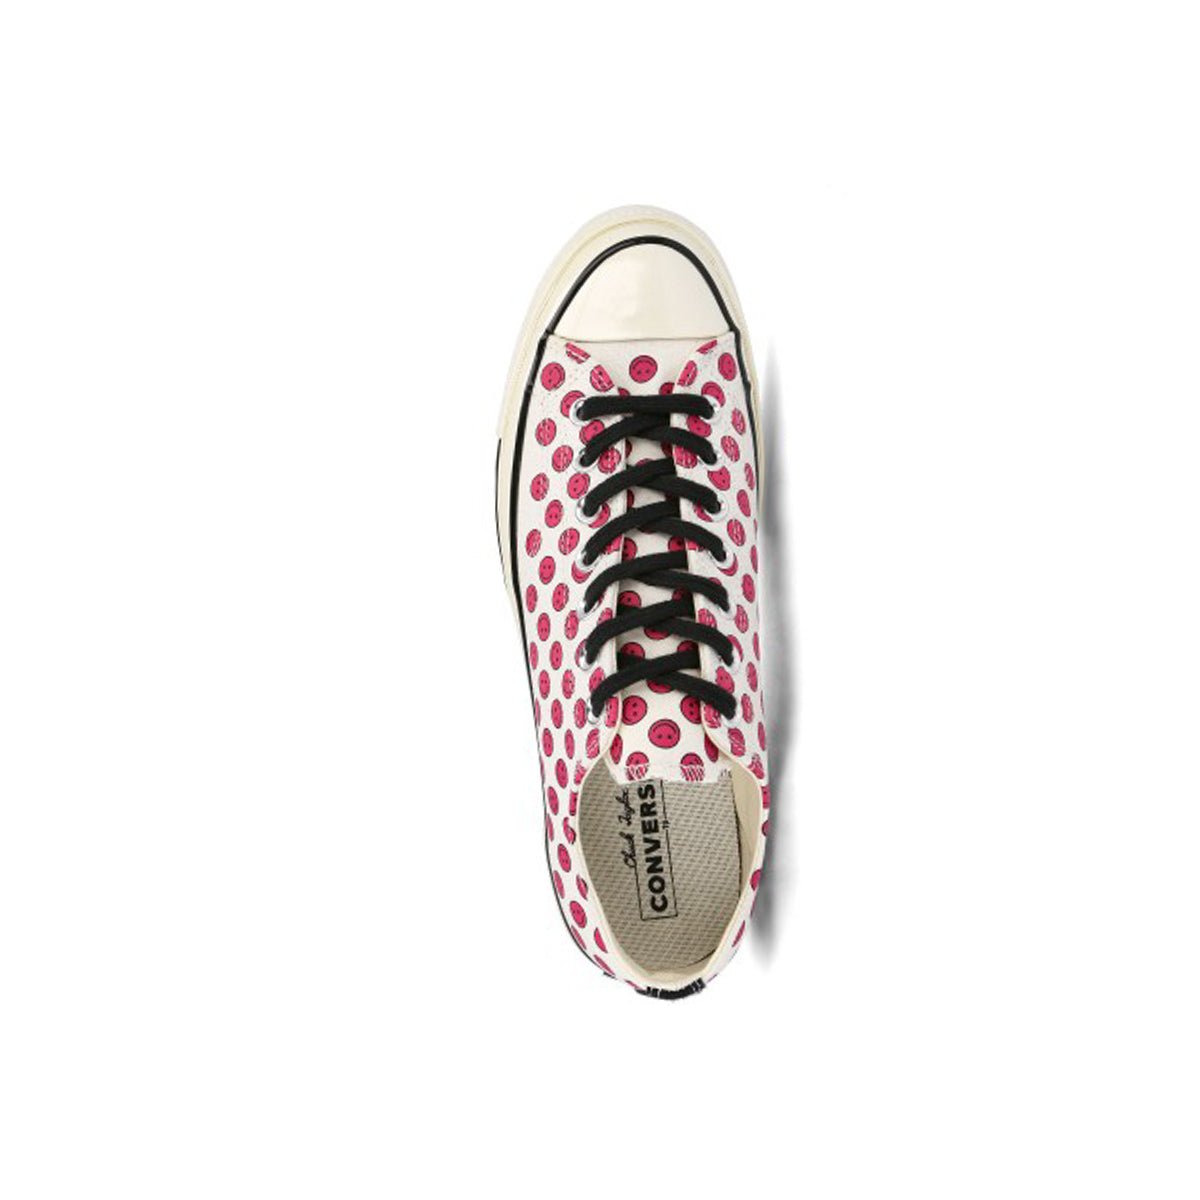 CONVERSE CHUCK 70 HAPPY CAMPER PRINT OX LOW UNISEX SNEAKERS 167645C